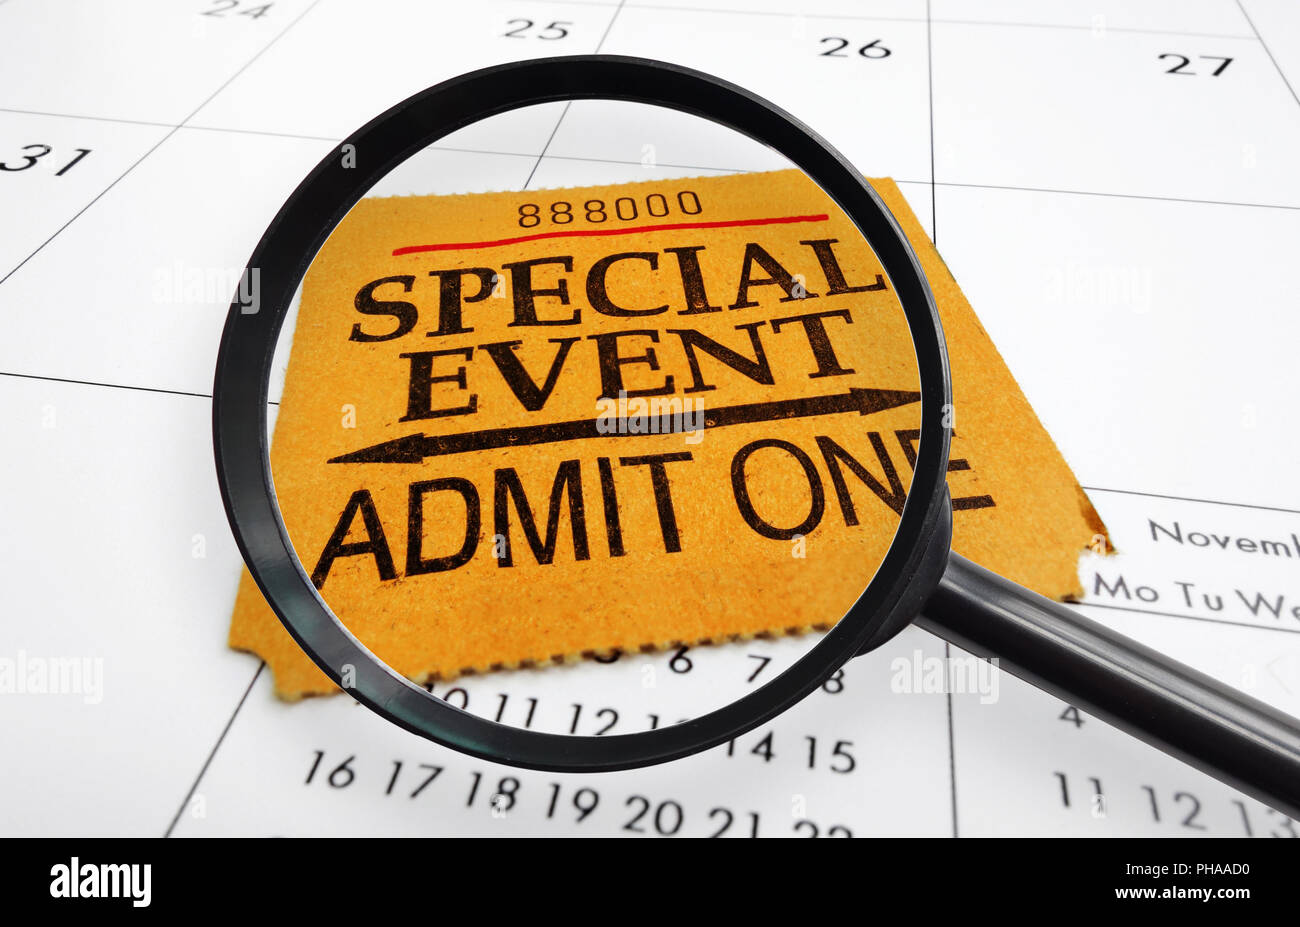 event ticket search - Stock Image